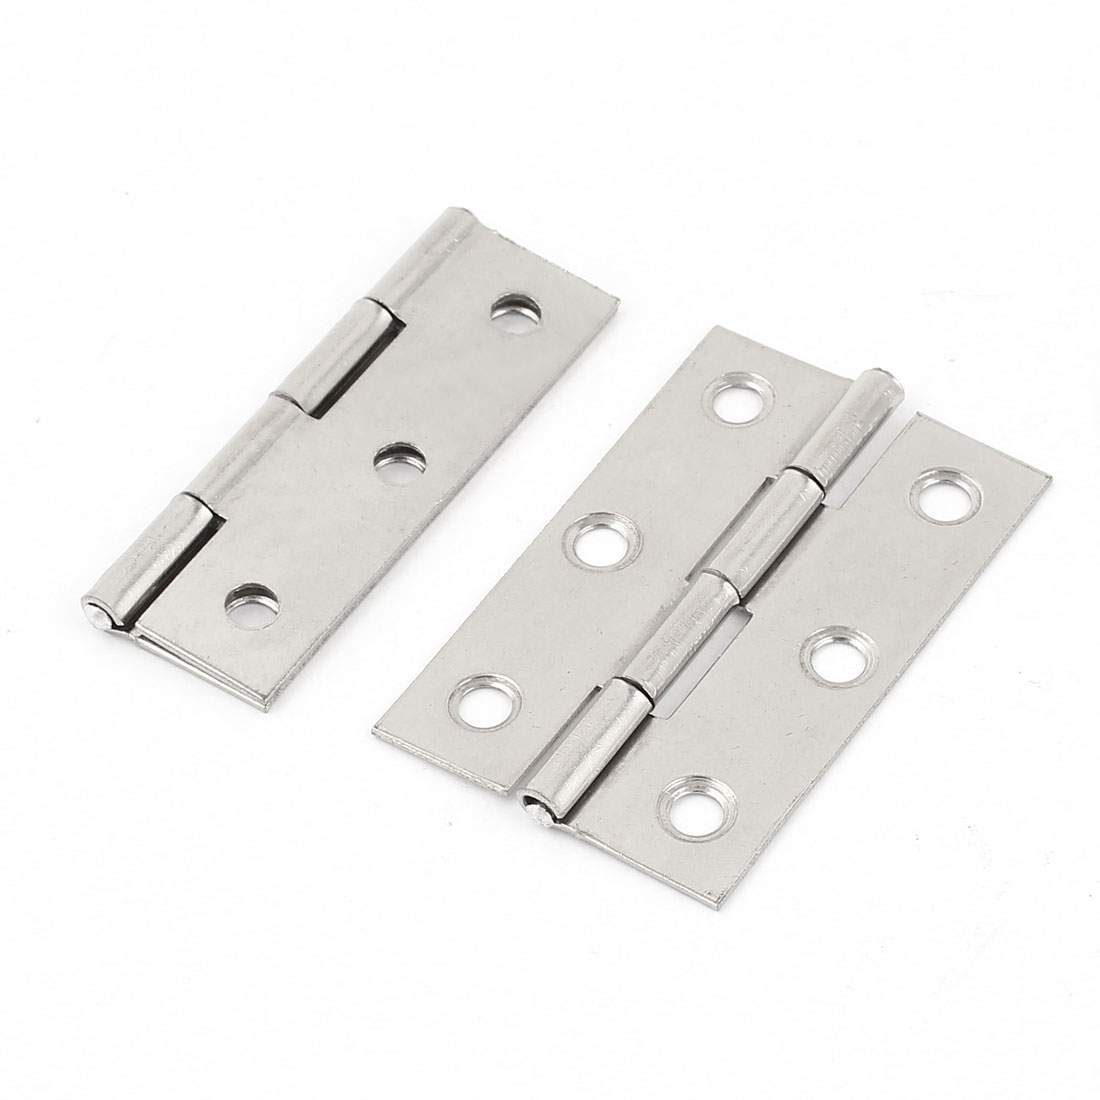 "2 Pcs Silver Tone 2.2"" Length Foldable Cupboard Closet Door Hinges Hardware"